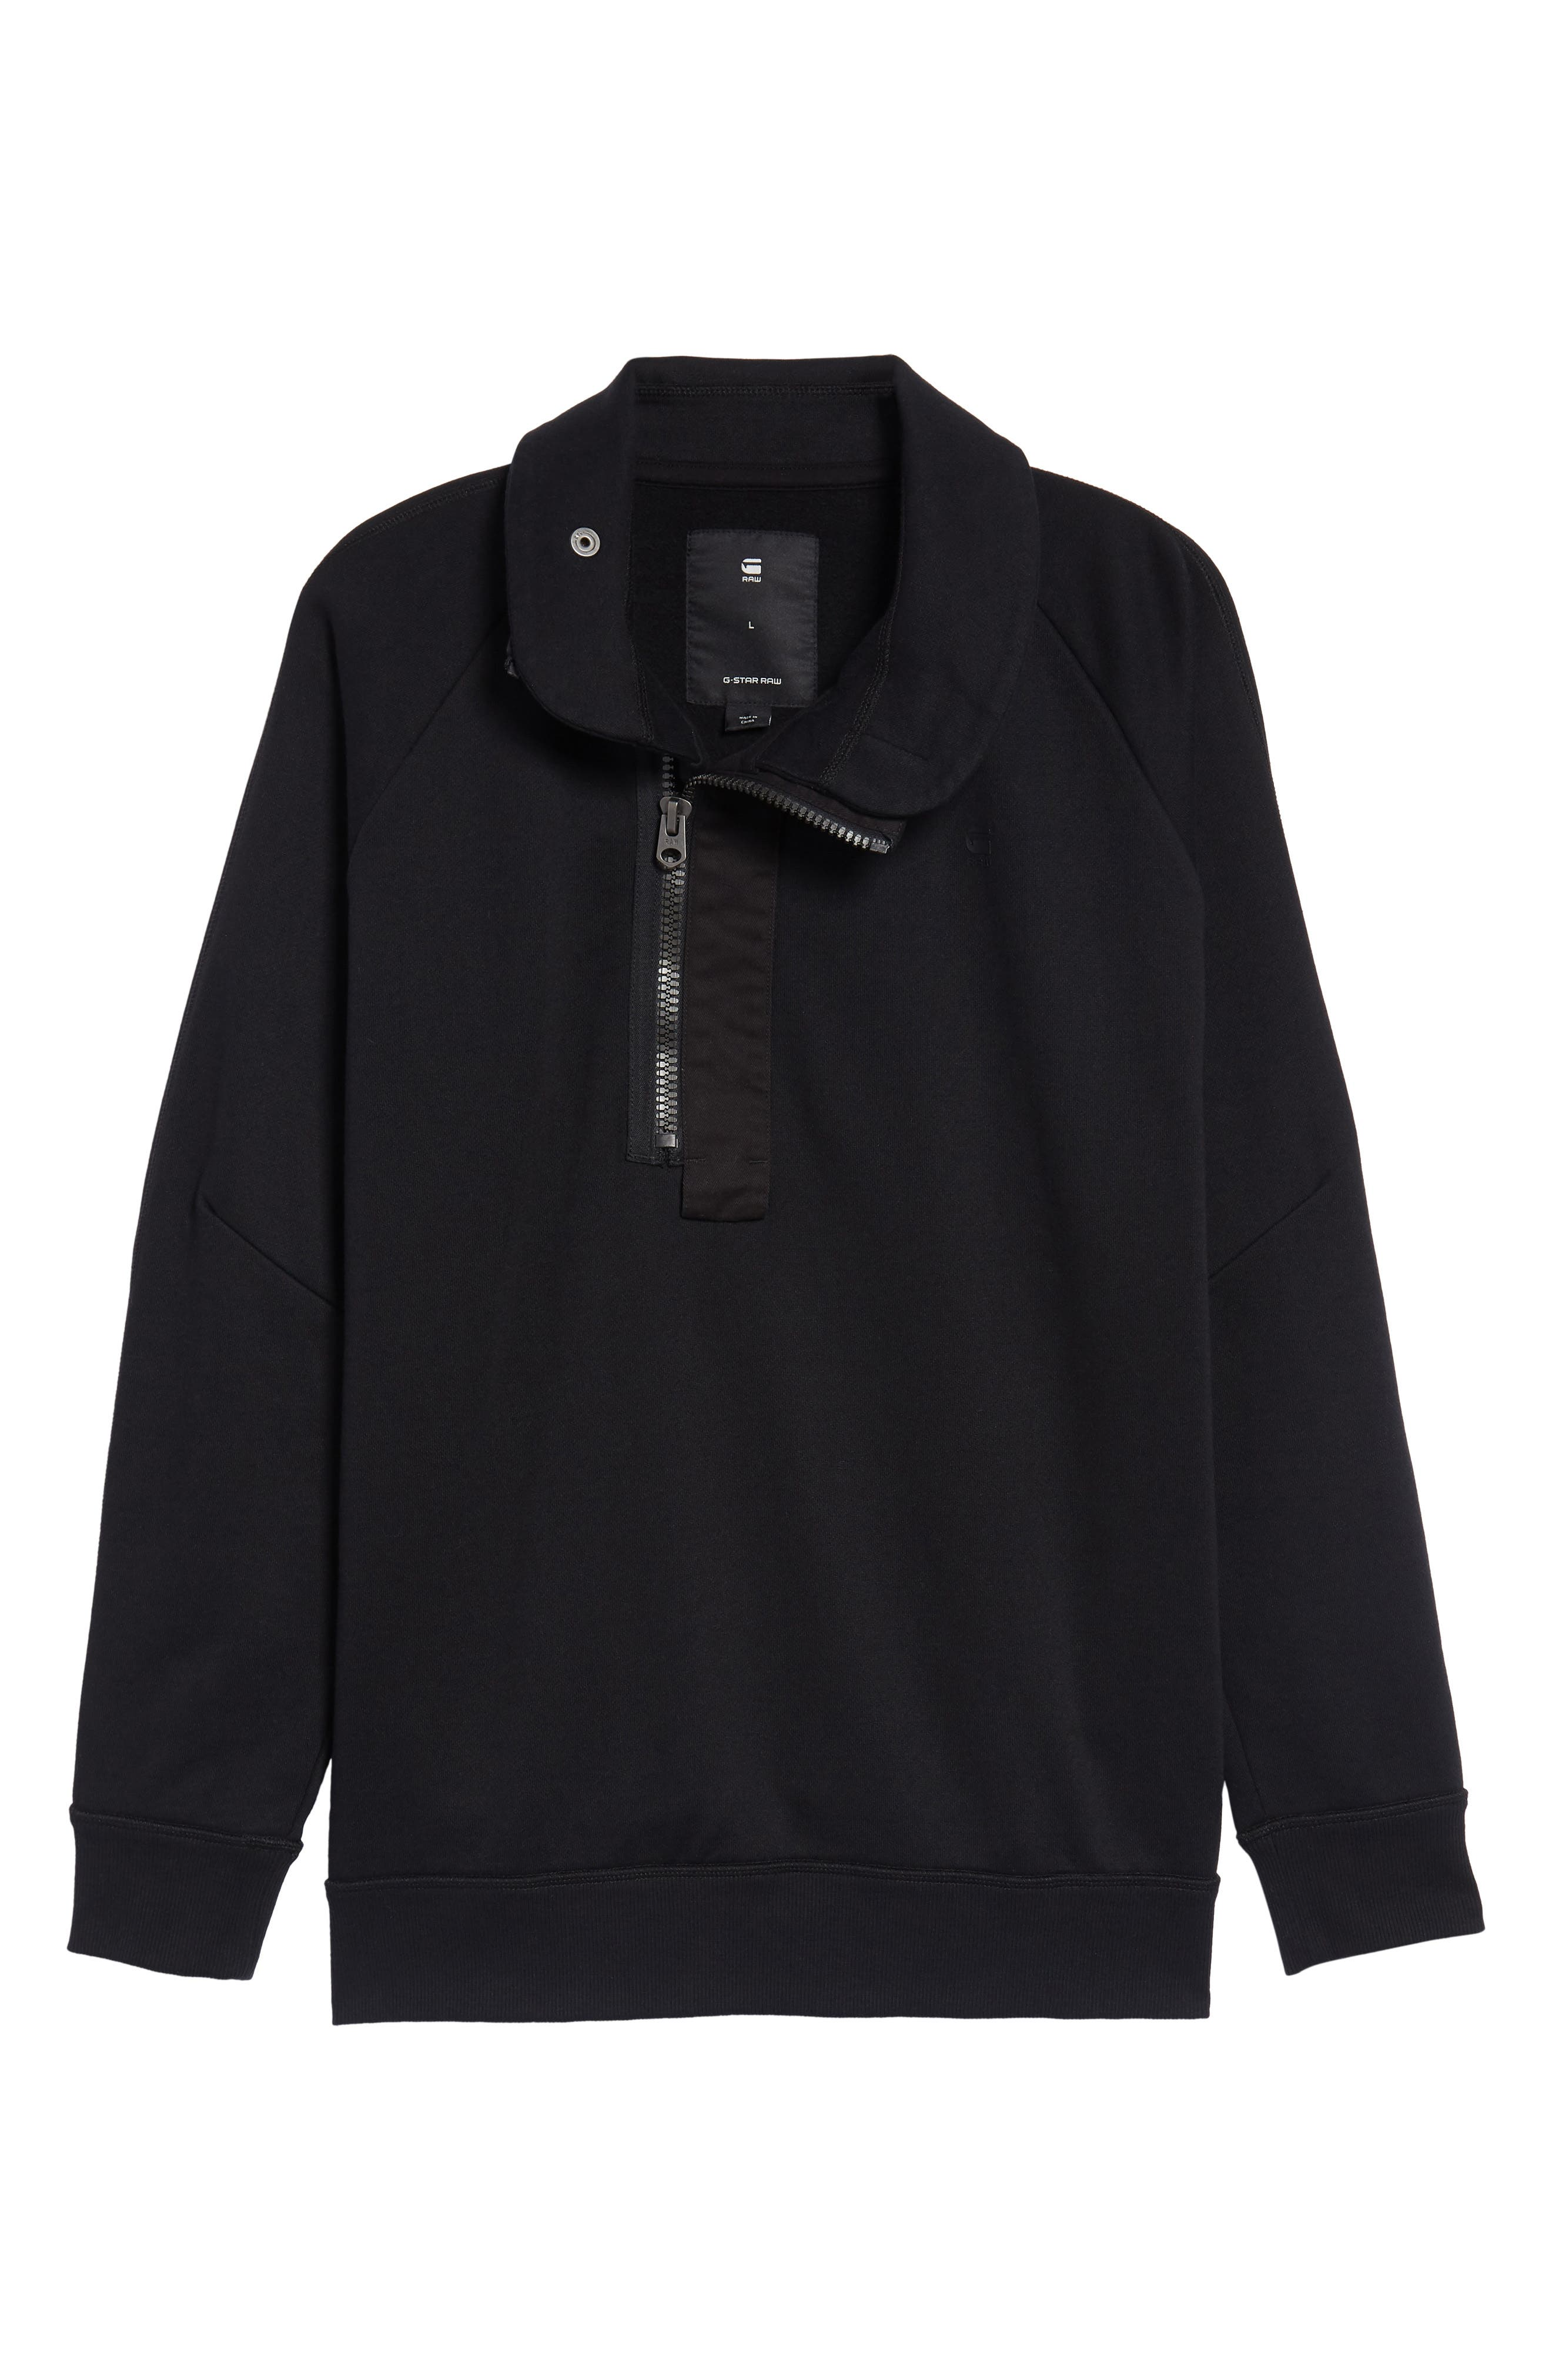 Empral Quarter Zip Pullover,                             Alternate thumbnail 6, color,                             Dark Black